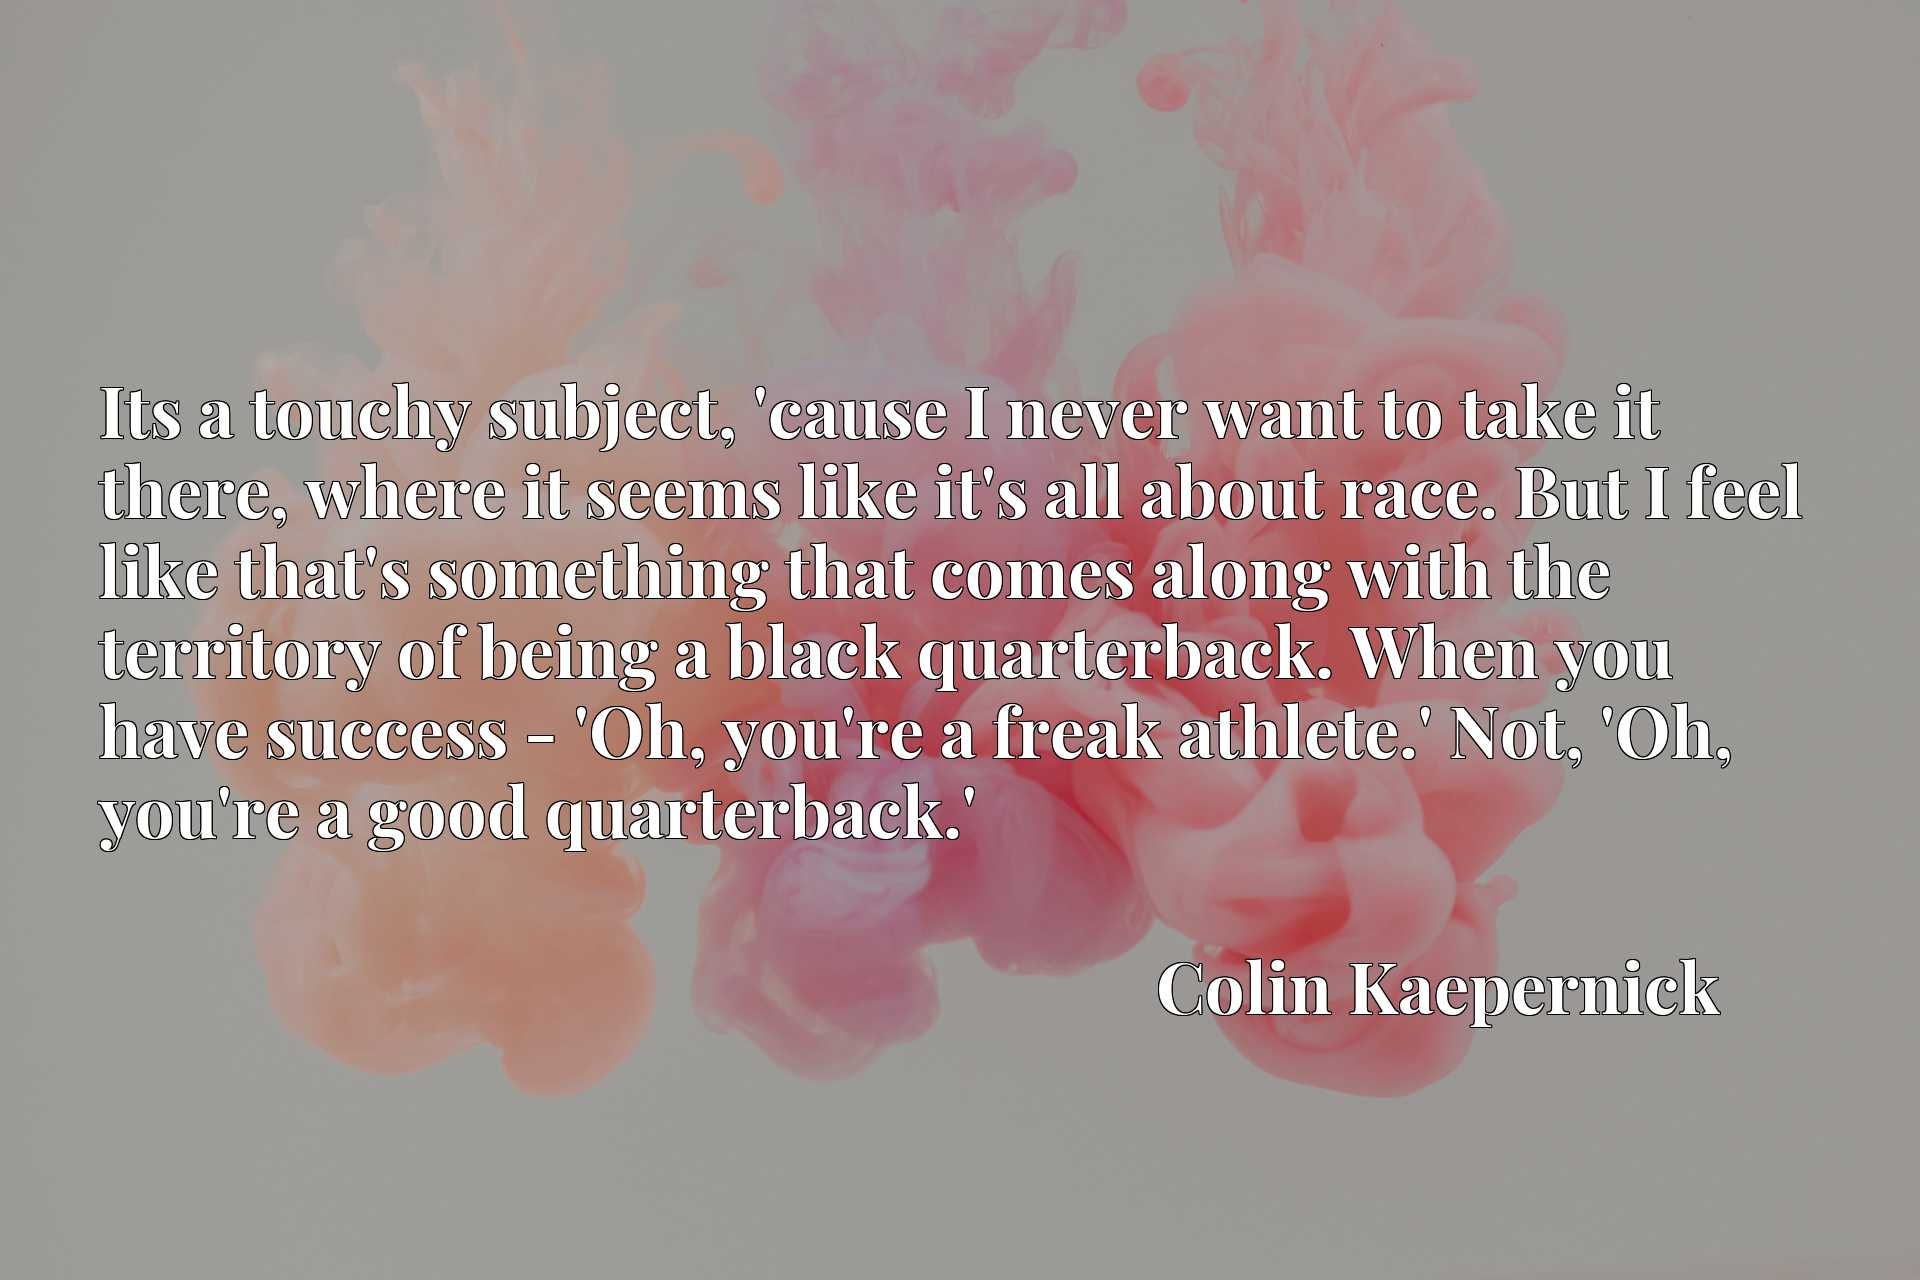 Its a touchy subject, 'cause I never want to take it there, where it seems like it's all about race. But I feel like that's something that comes along with the territory of being a black quarterback. When you have success - 'Oh, you're a freak athlete.' Not, 'Oh, you're a good quarterback.'